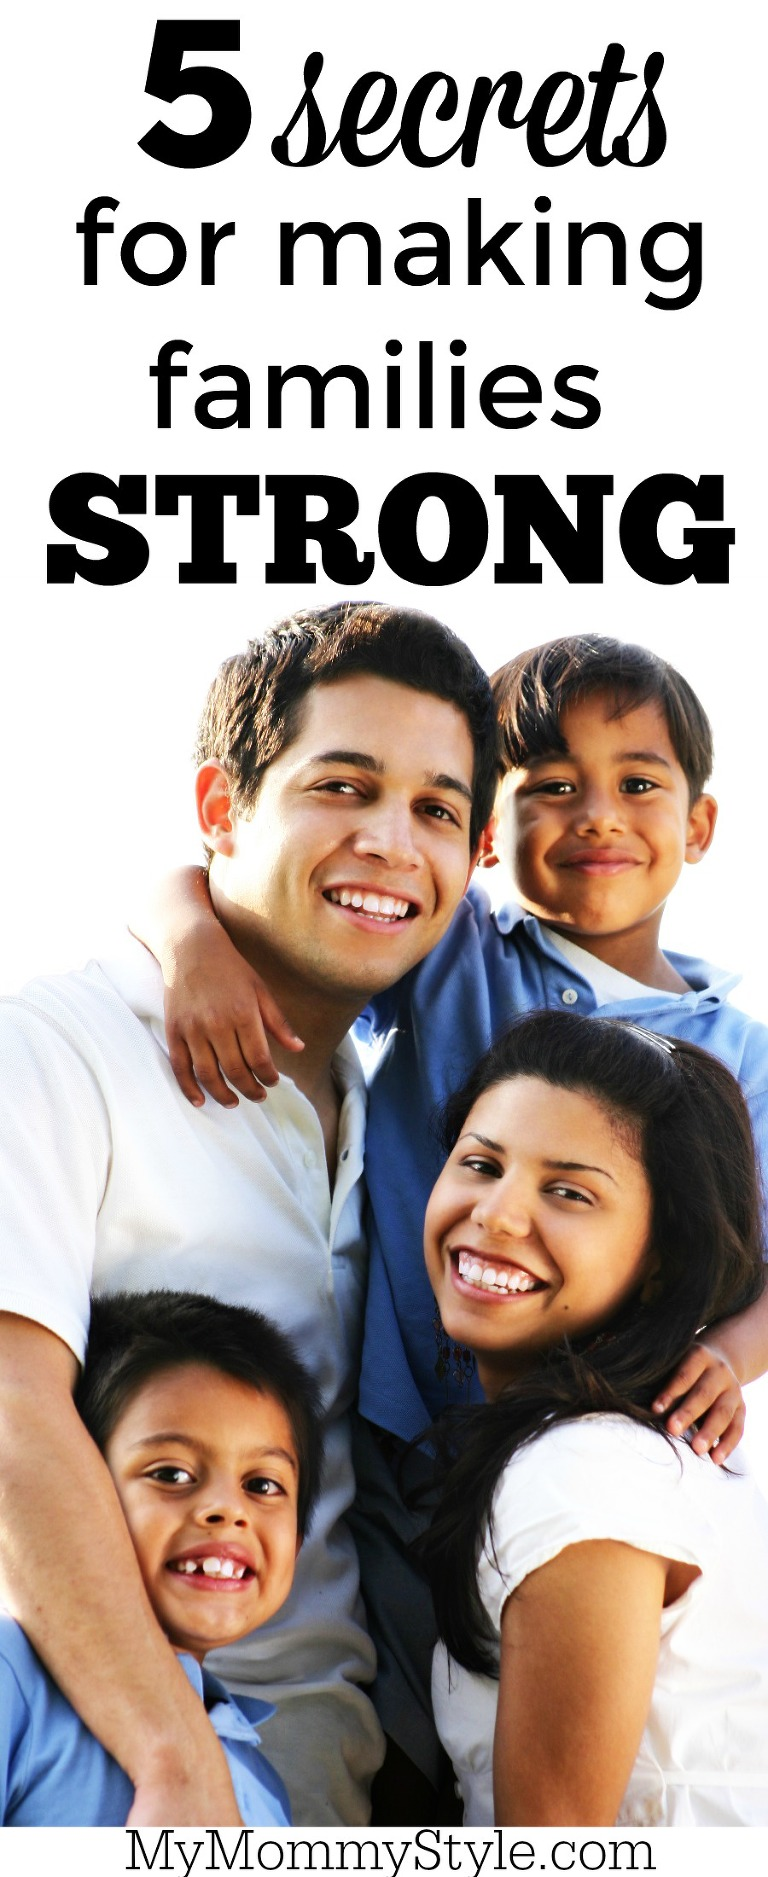 5-secrets-for-making-families-strong